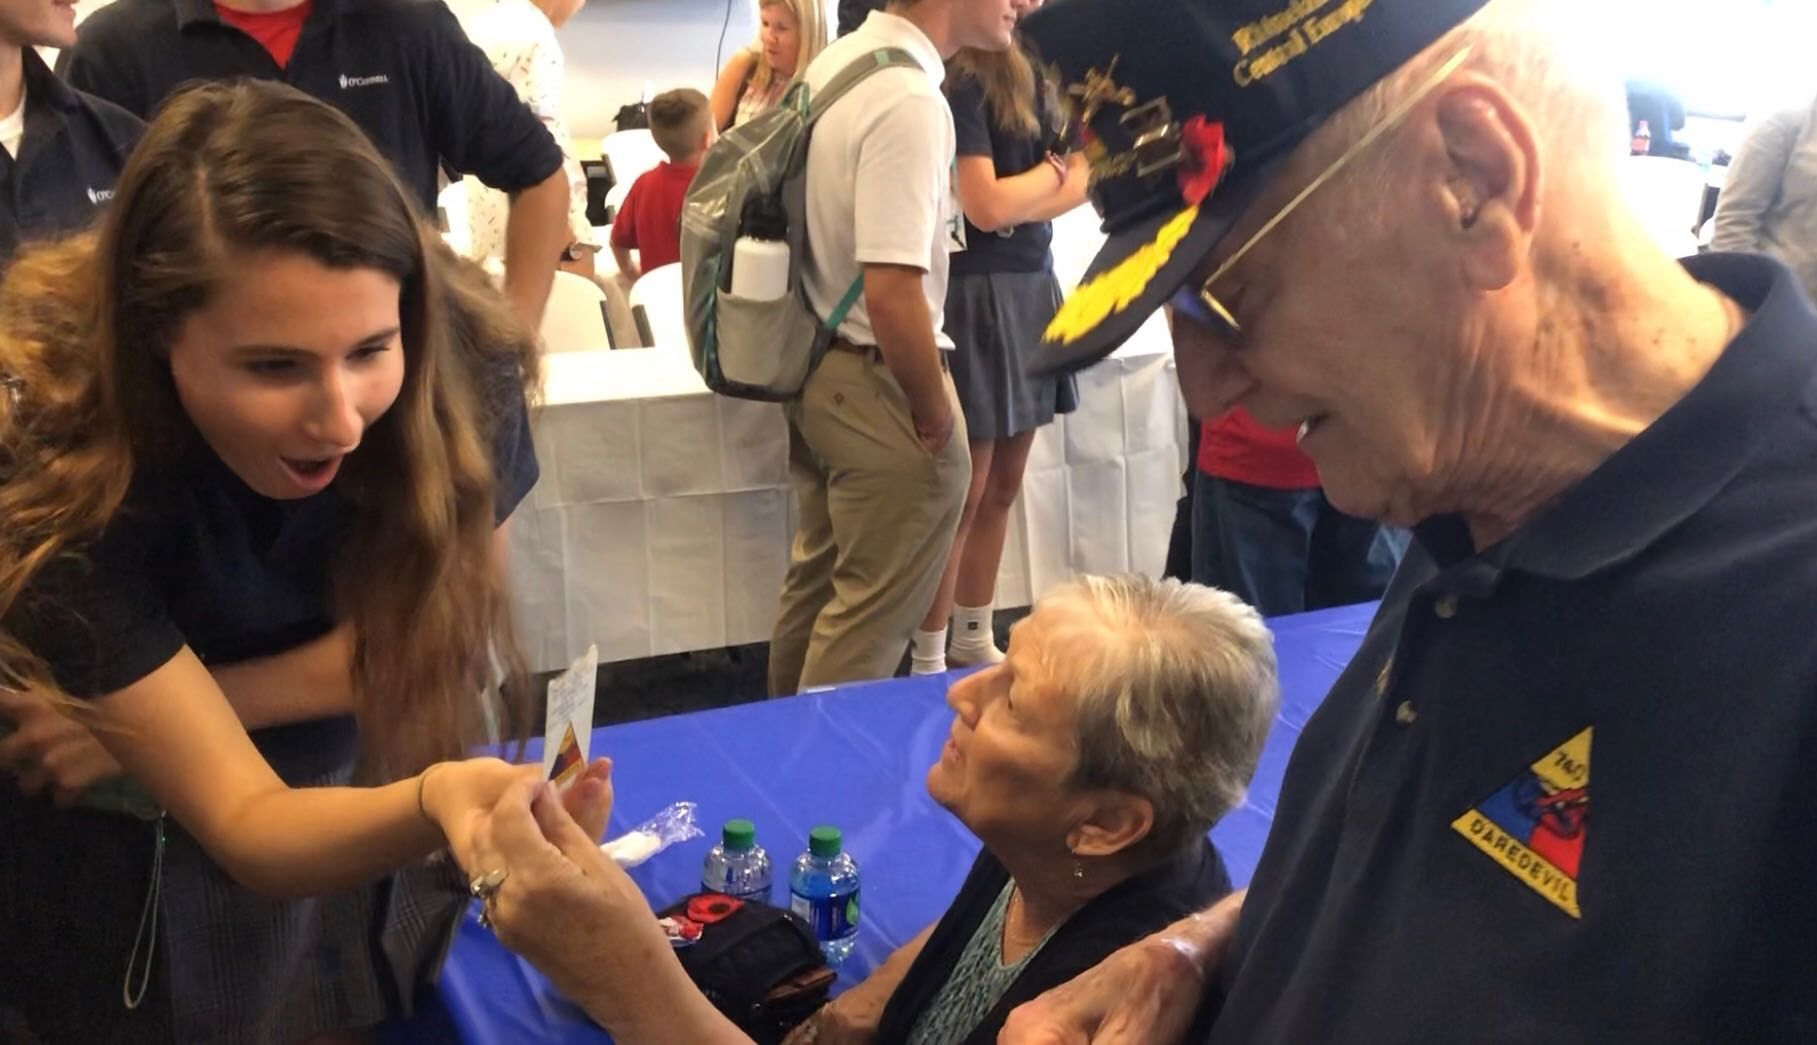 Skye Ferris, 17, visits with veterans who took part during D-Day. (Kristi King)